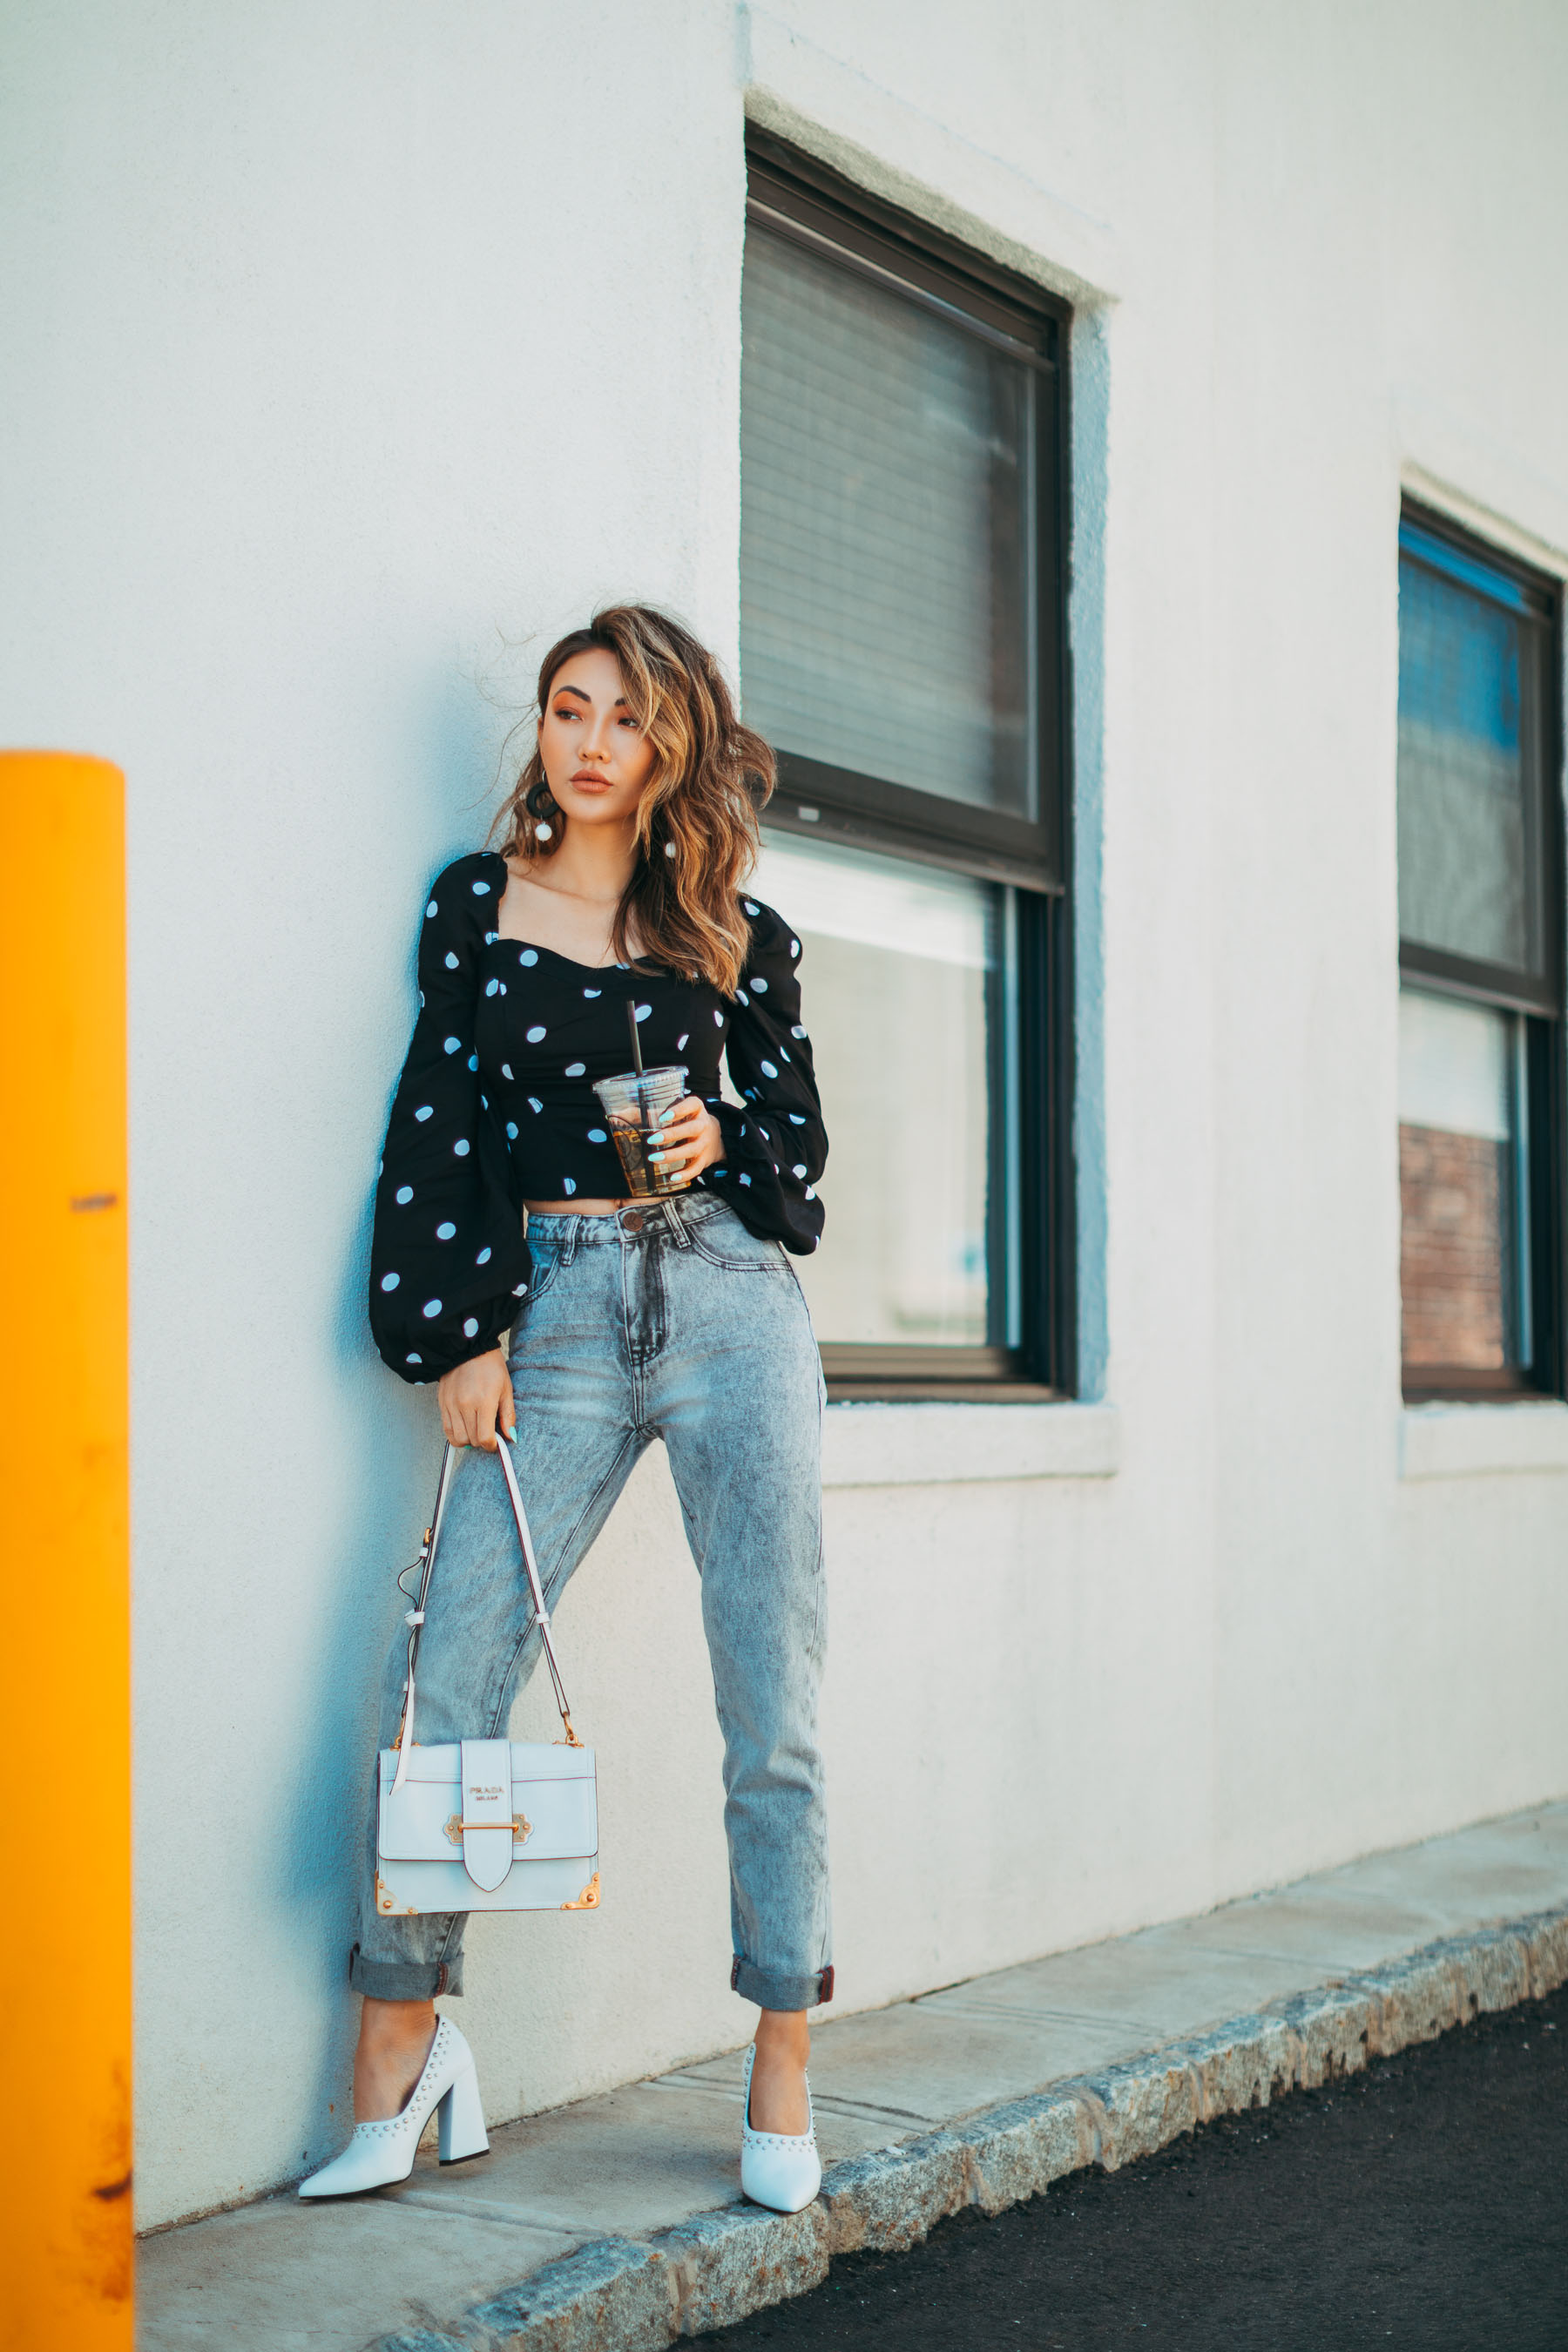 fourth of july outfit guide - polkadot square neckline top with jeans and prada handbag // Notjessfashion.com